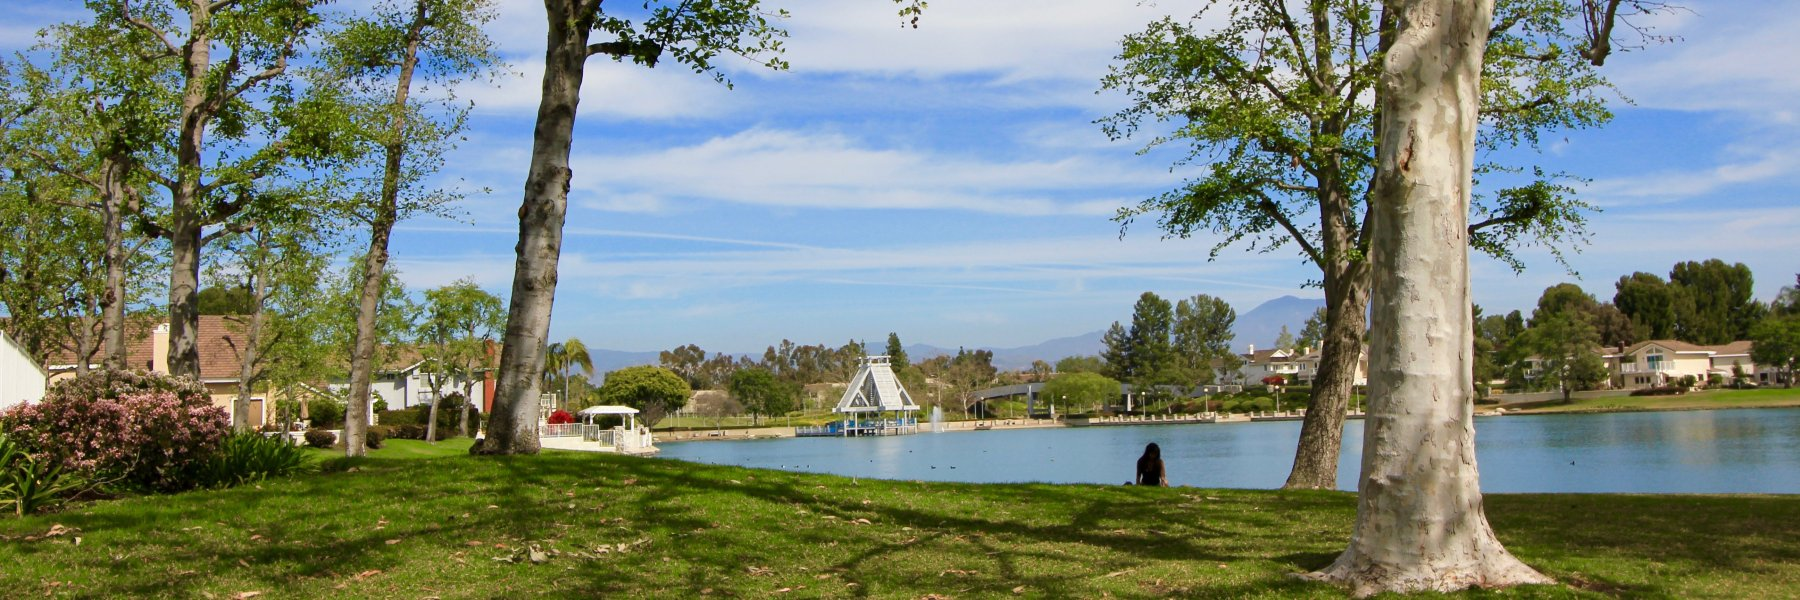 Woodbridge is a community of homes in Irvine California